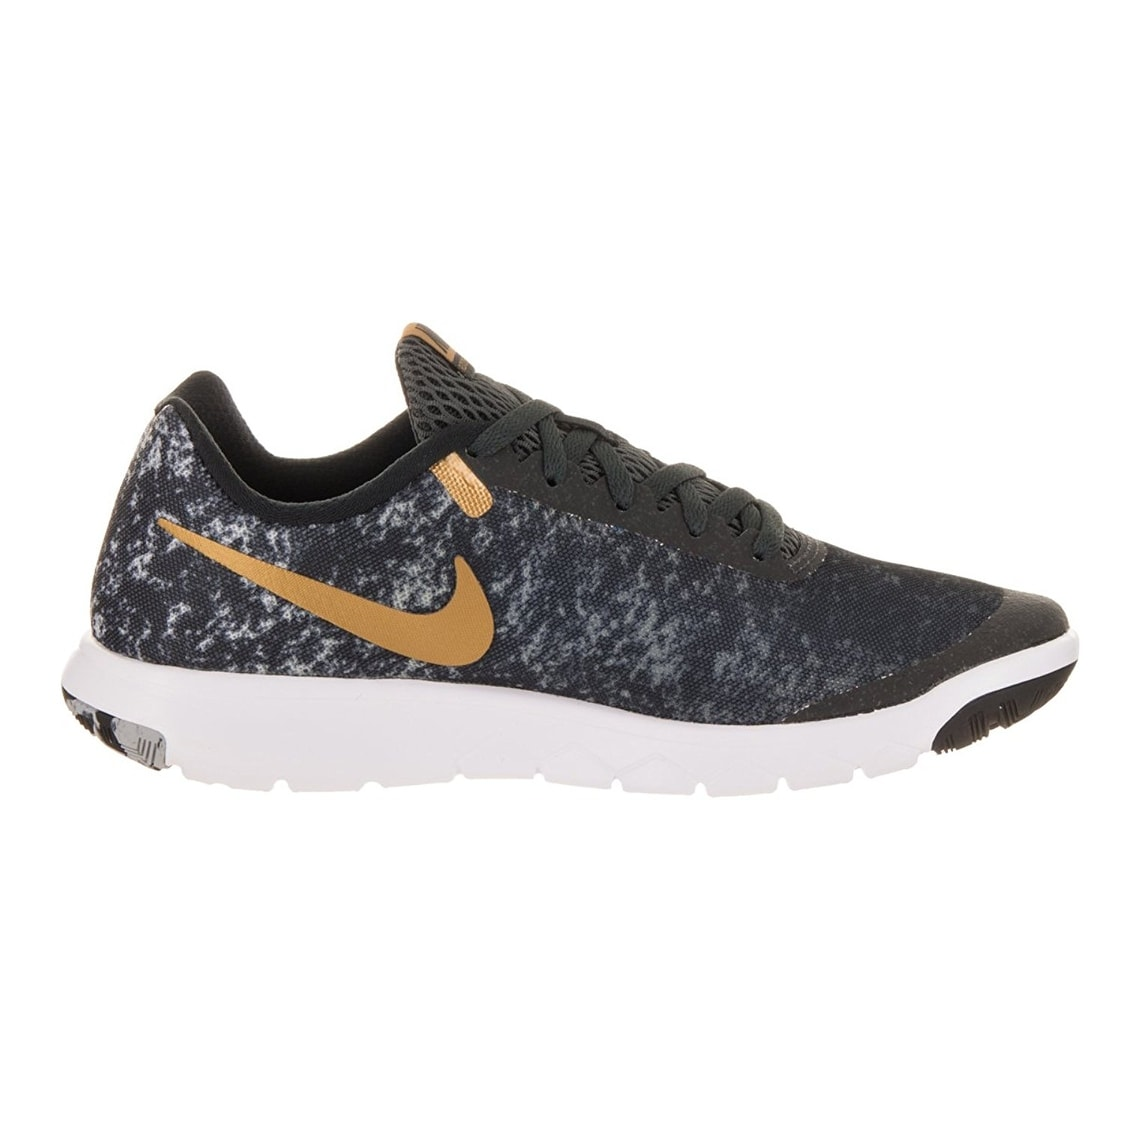 4600f4e07fe5 Shop Nike Flex Experience RN 6 Premium Black Metallic Gold Anthracite White  Women s Running Shoes - Free Shipping Today - Overstock - 17950006